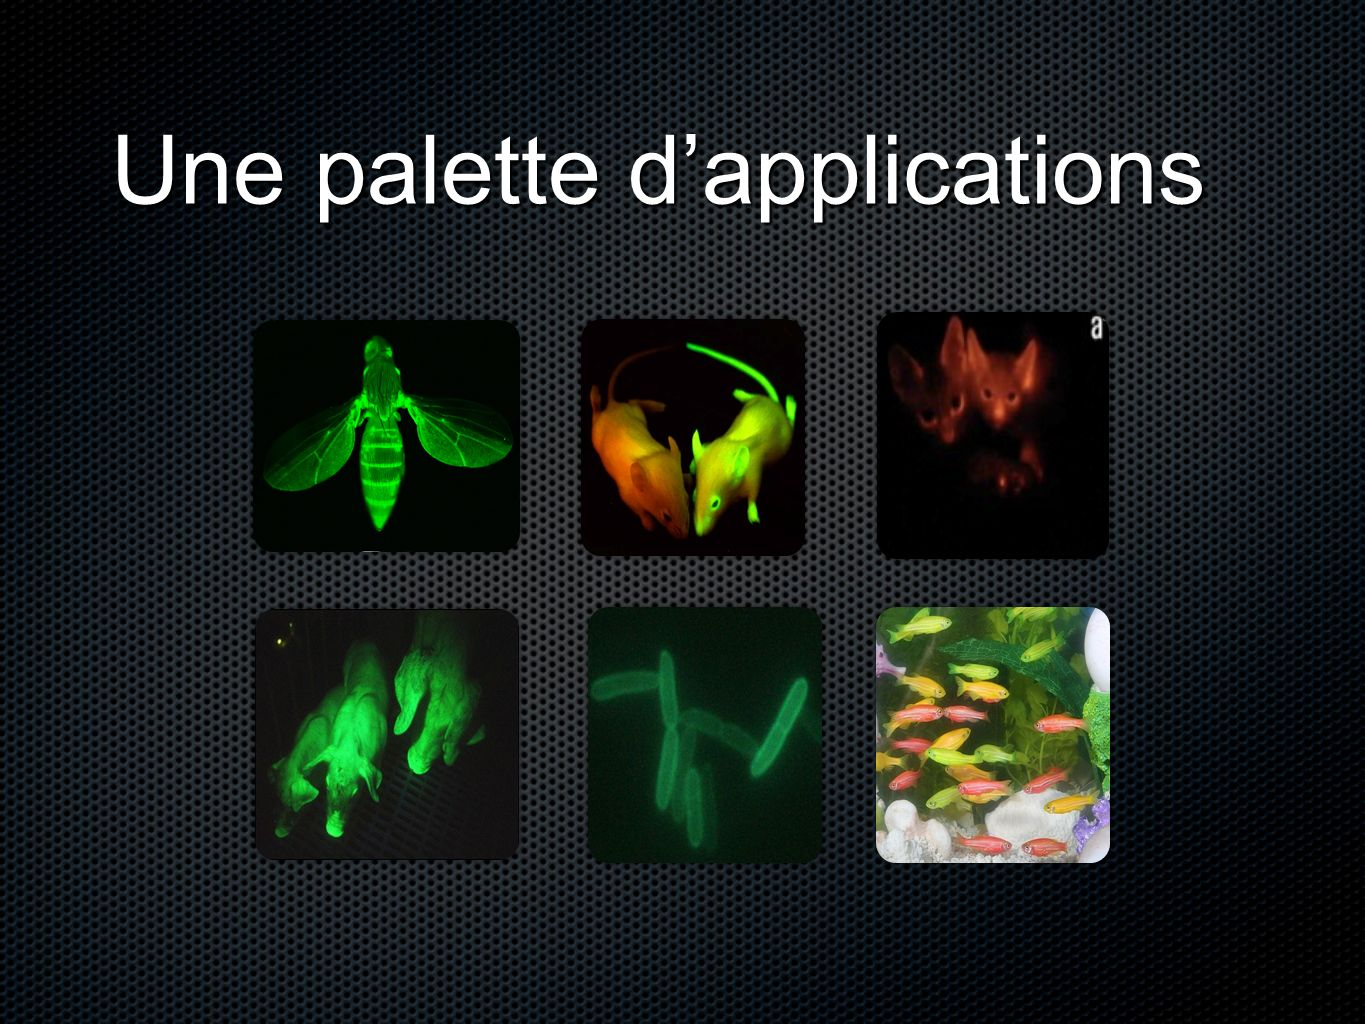 Une palette d'applications